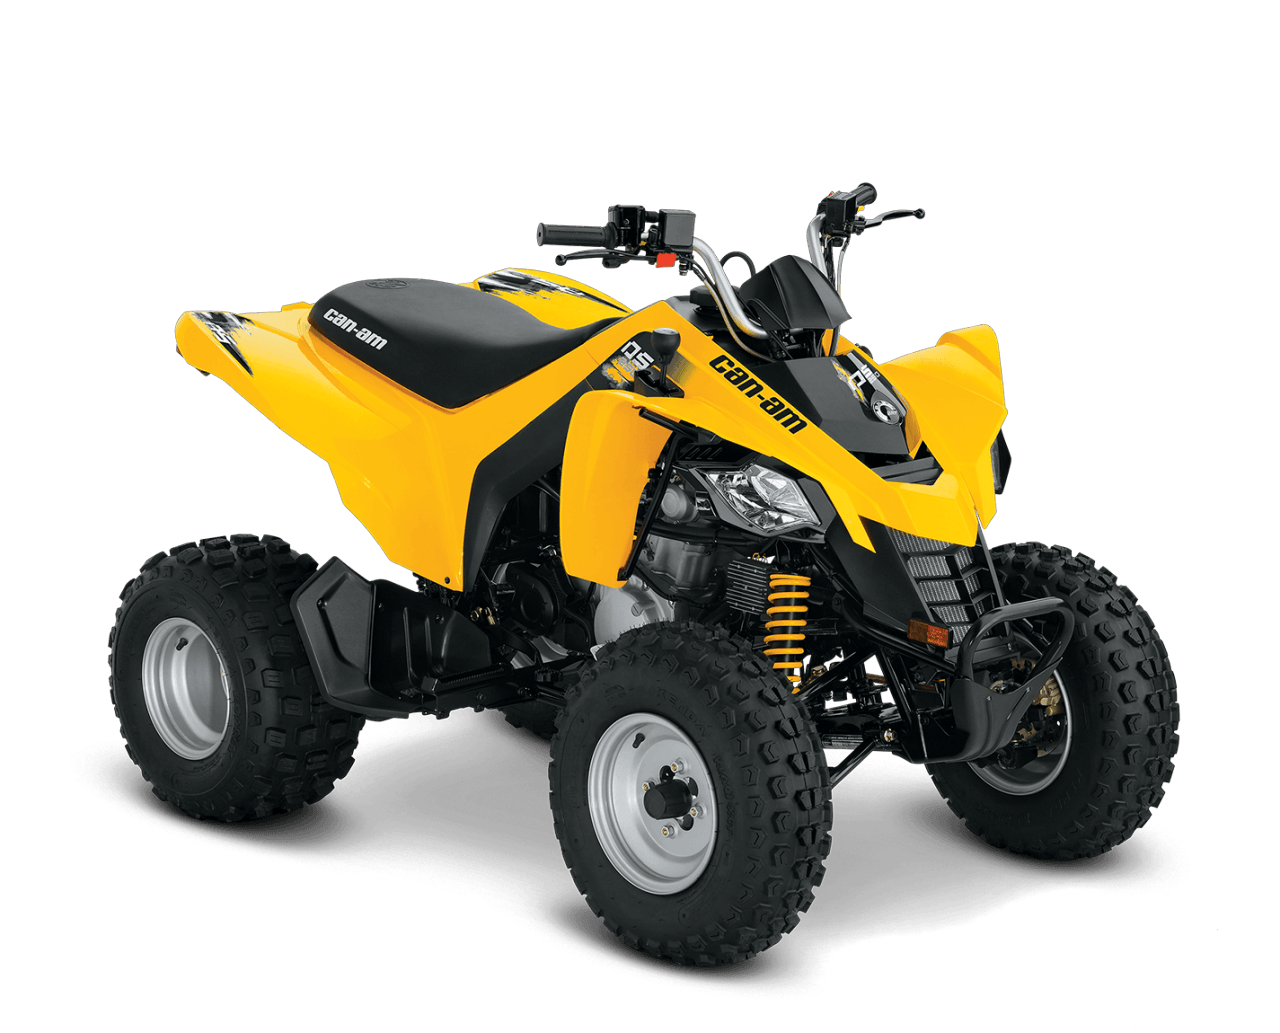 2016 Can-Am DS 250 for sale 19340